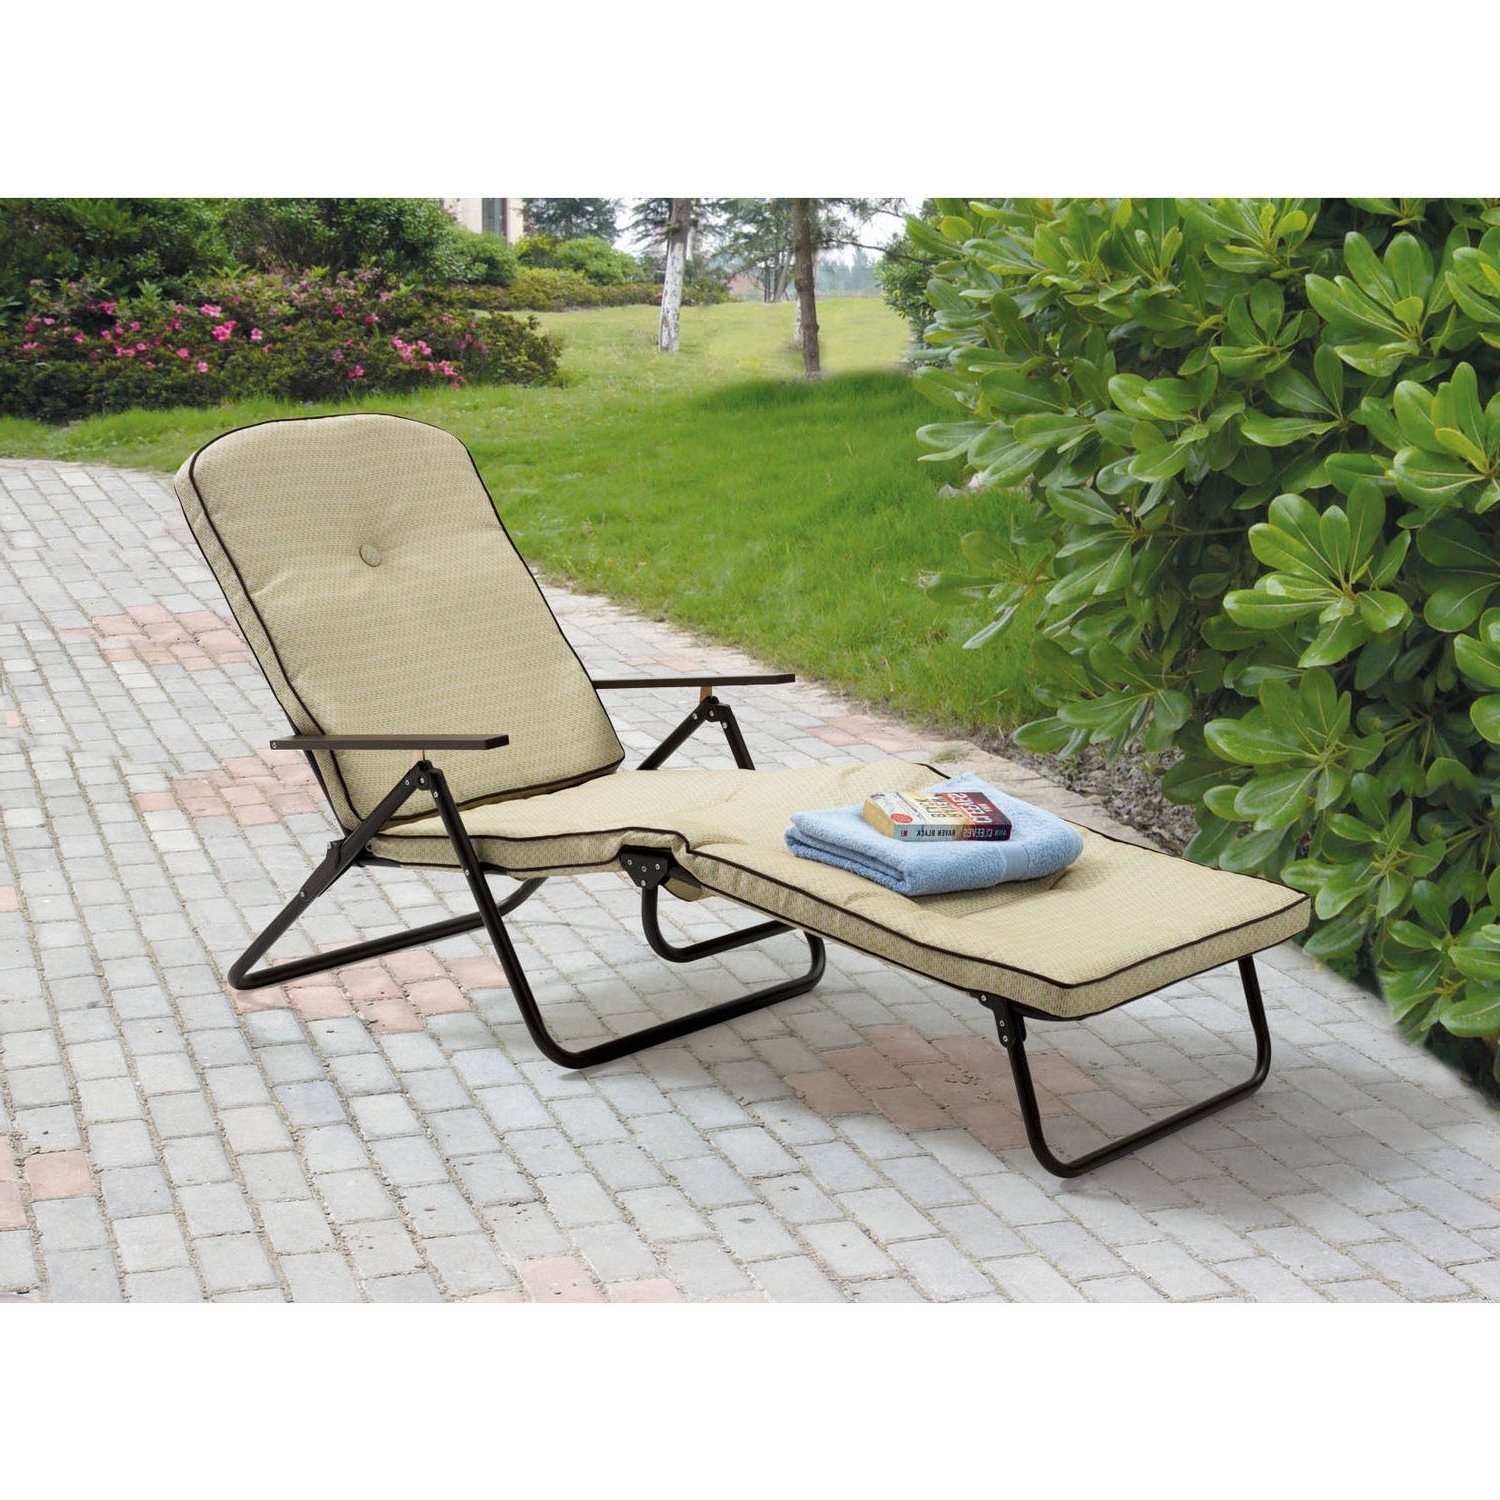 Trendy Mainstays Sand Dune Outdoor Padded Folding Chaise Lounge, Tan Intended For Chaise Lounge Folding Chairs (View 14 of 15)